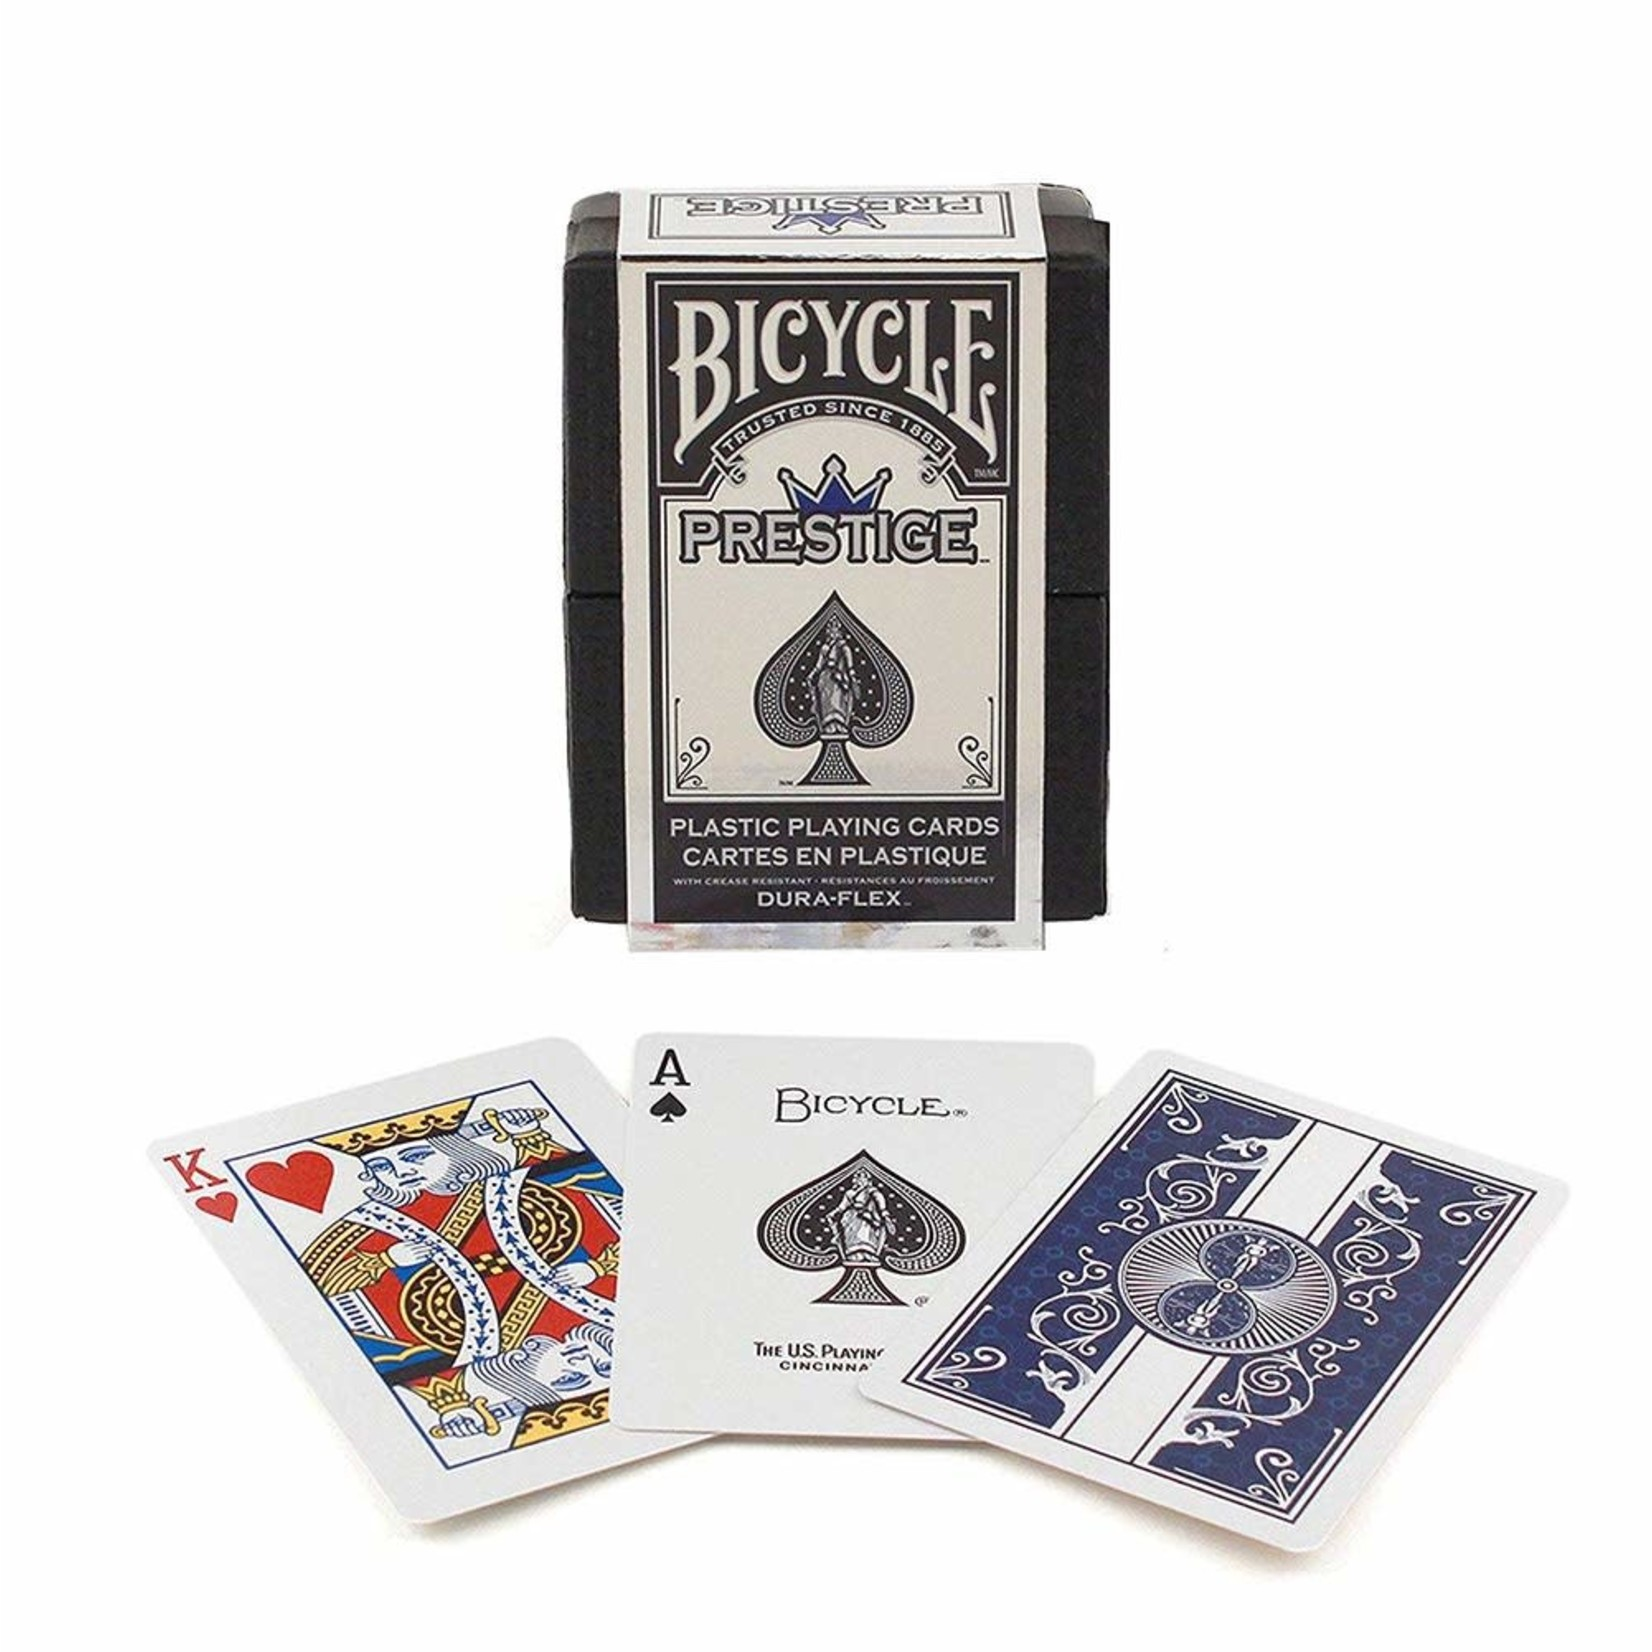 The United States Playing Card Company Bicycle Prestige Playing Cards